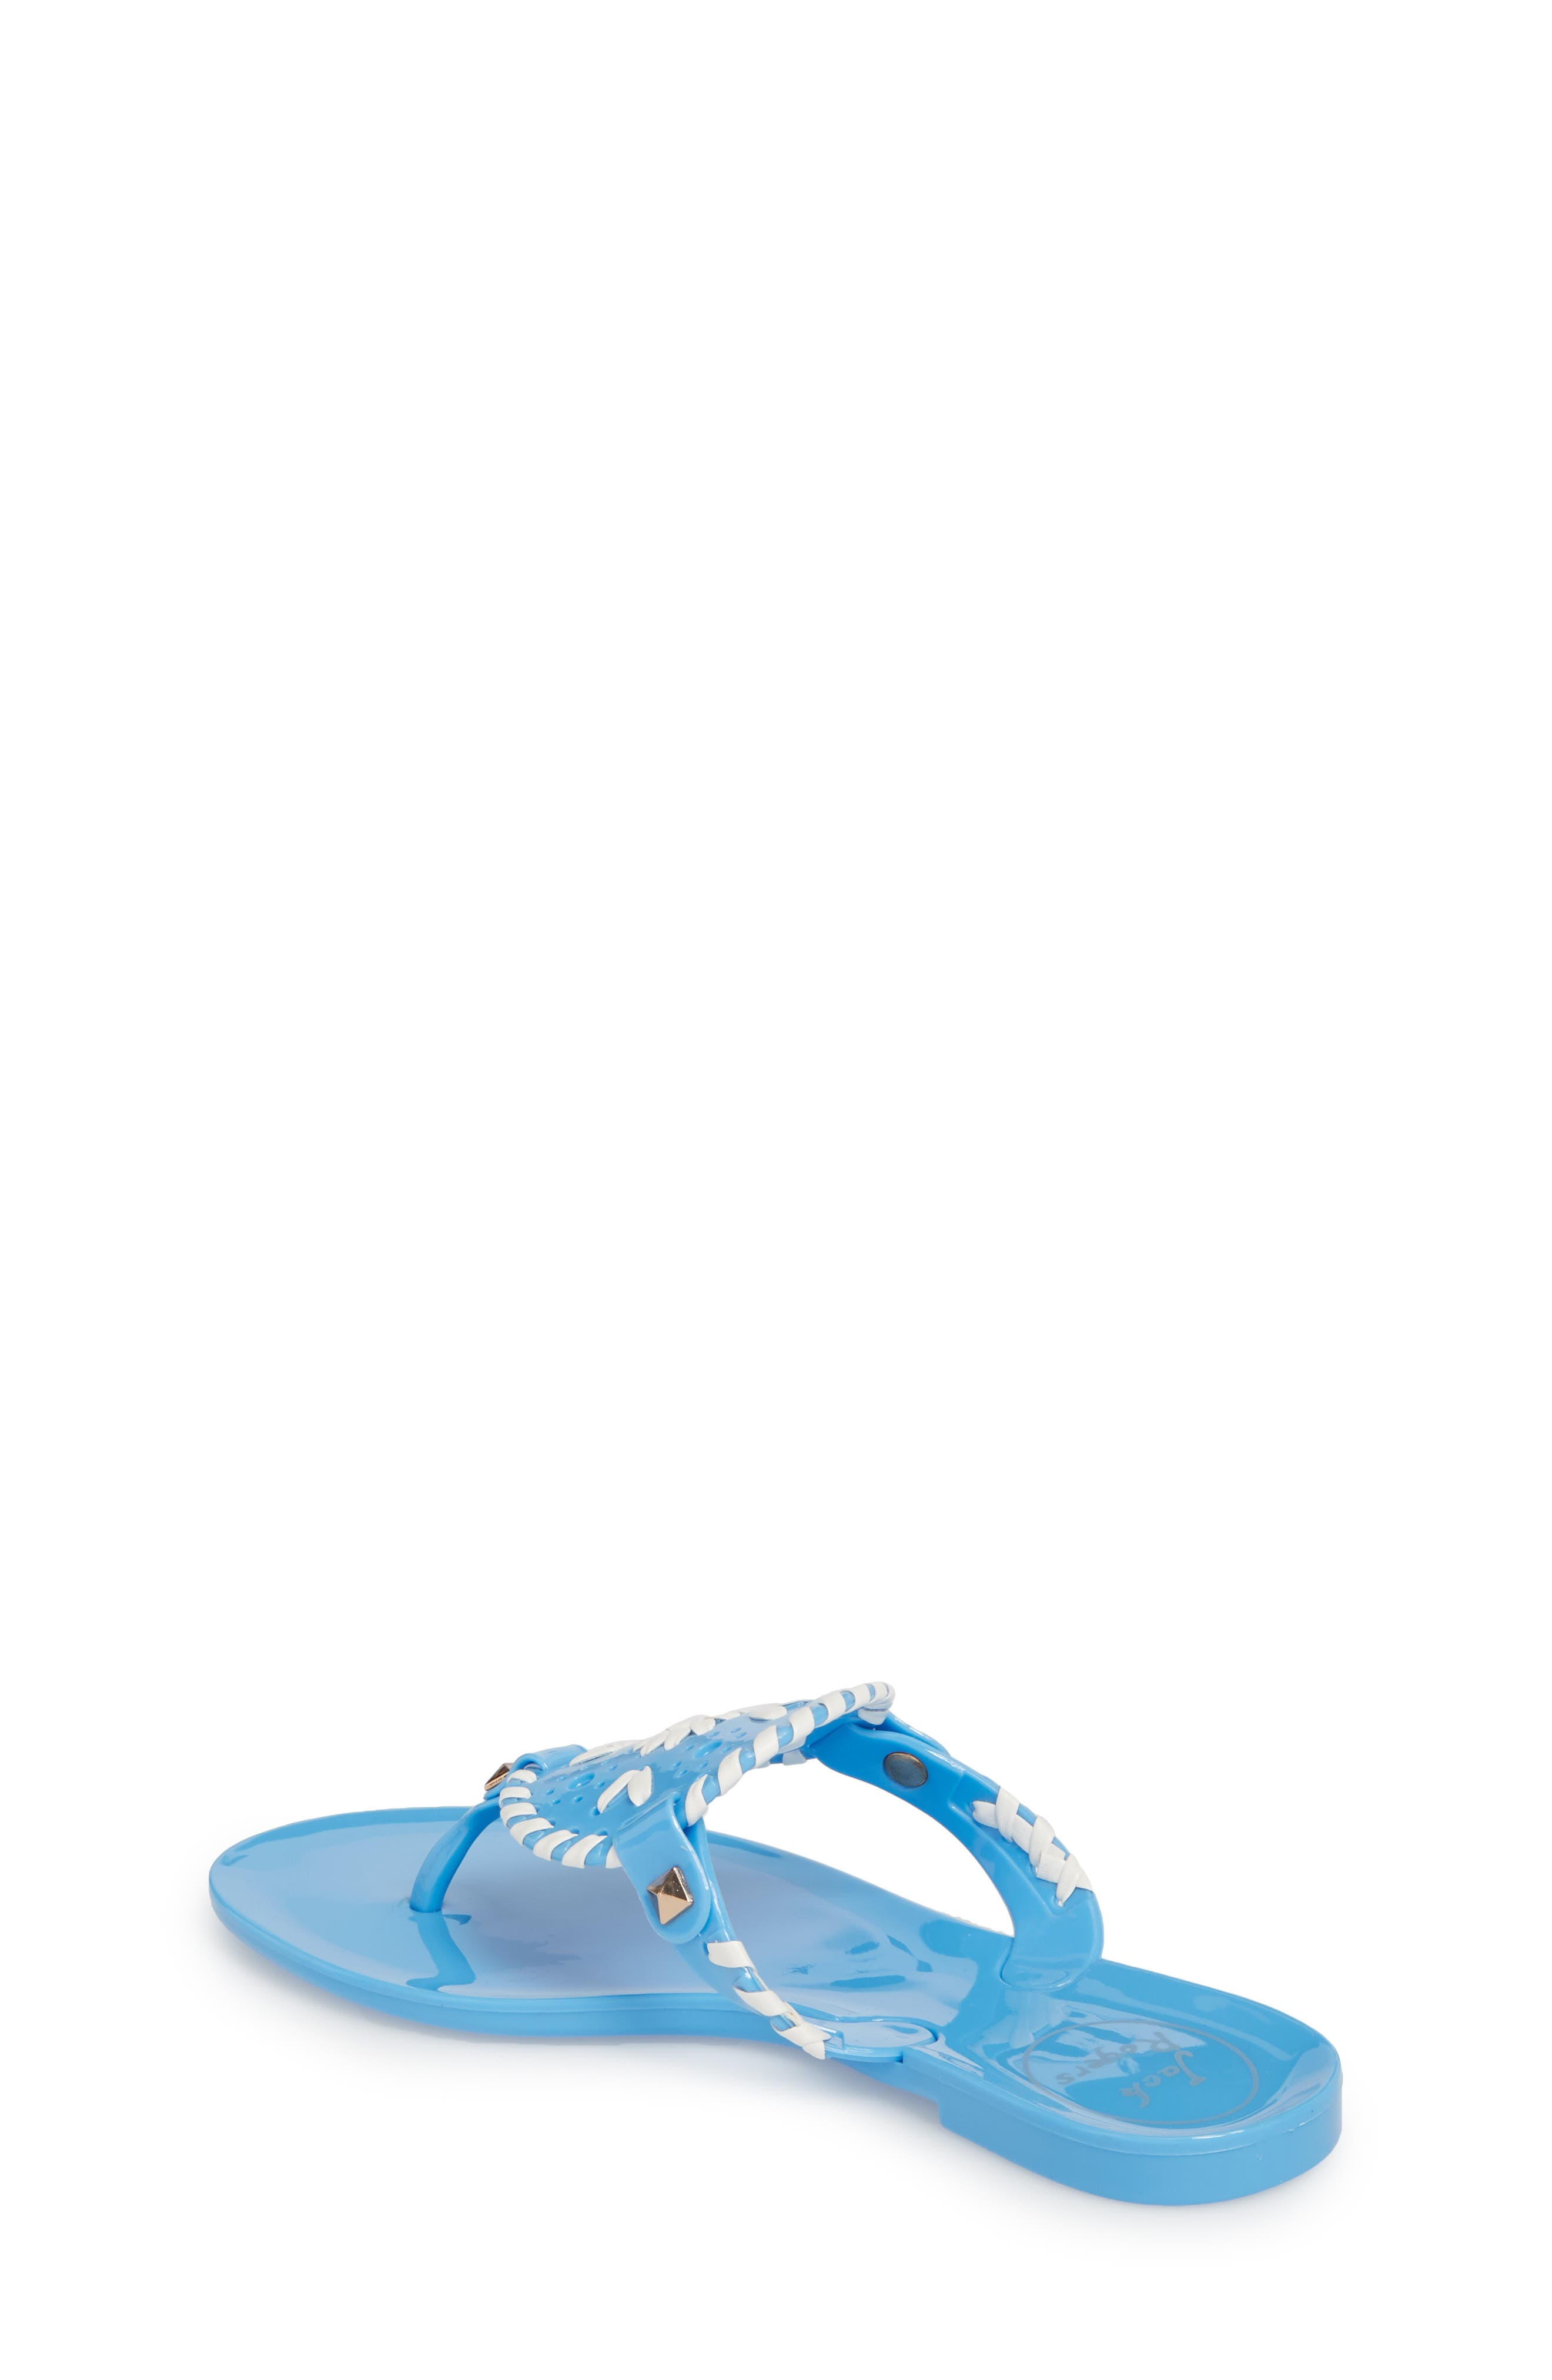 'Miss Georgica' Jelly Flip Flop,                             Alternate thumbnail 2, color,                             FRENCH BLUE/ WHITE JELLY